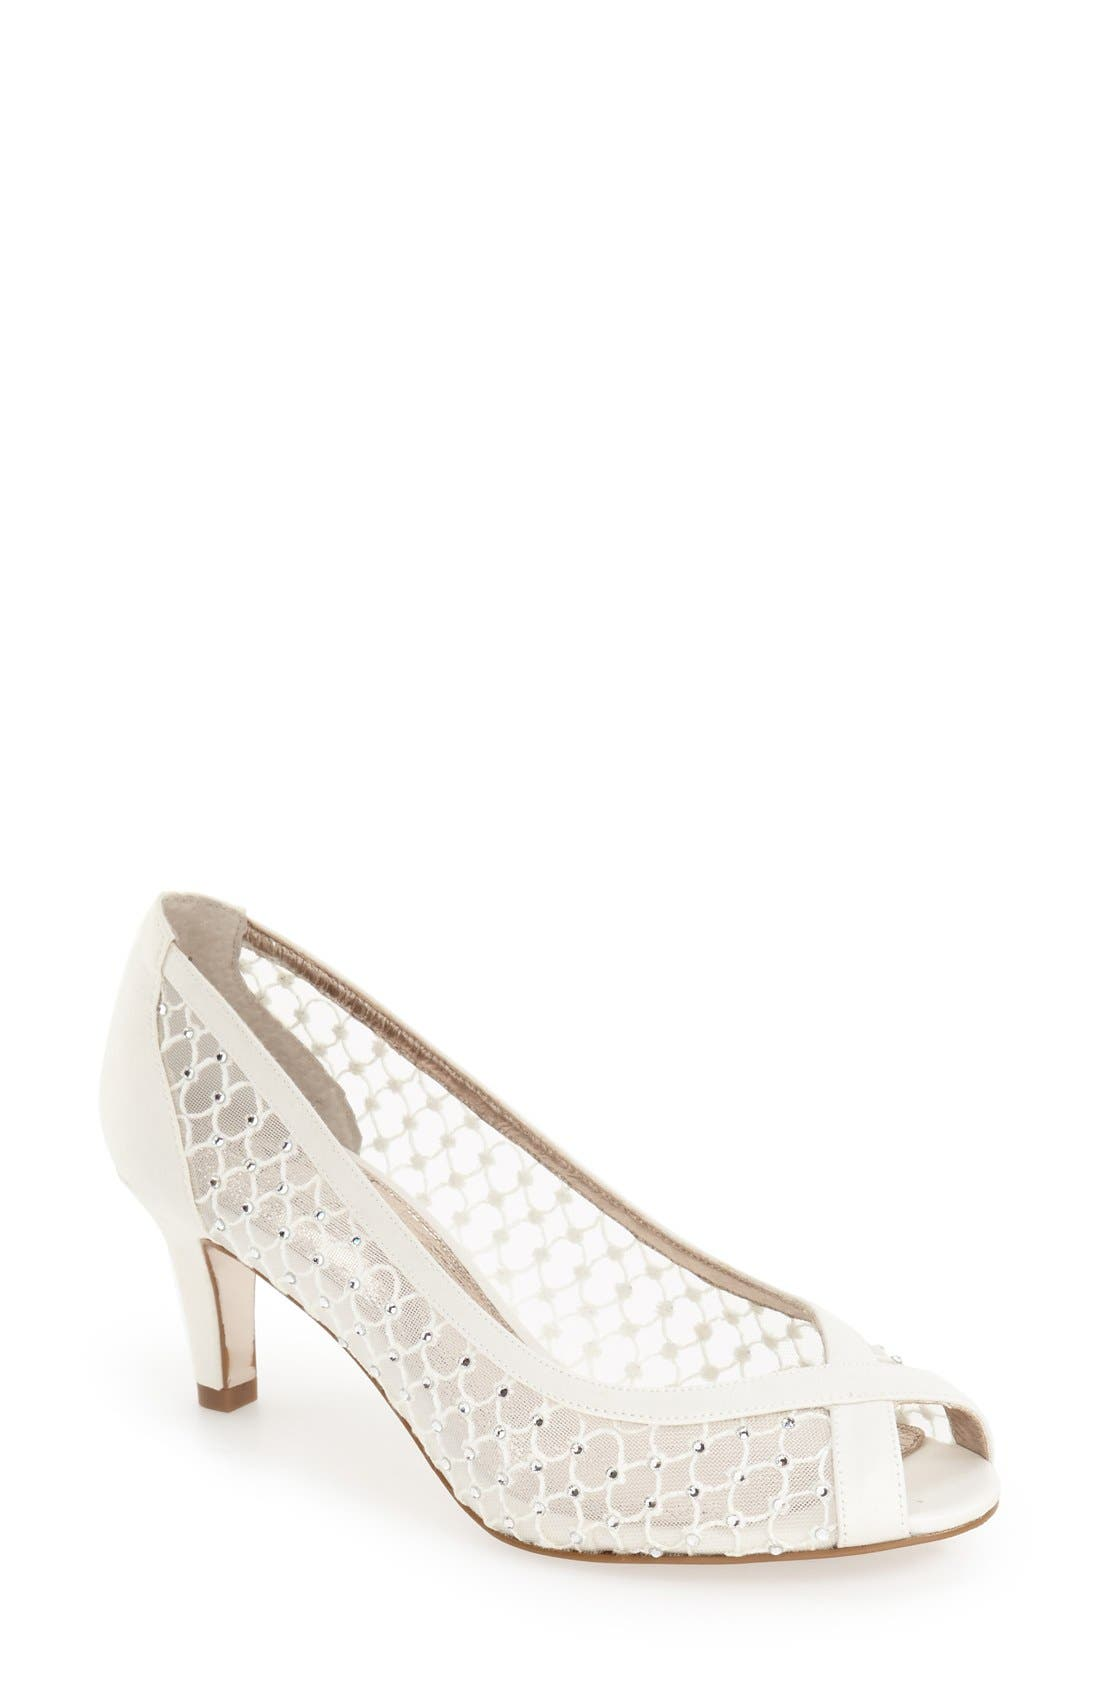 'Zandra' Crystal Embellished Peep Toe Pump,                         Main,                         color, Ivory Faille